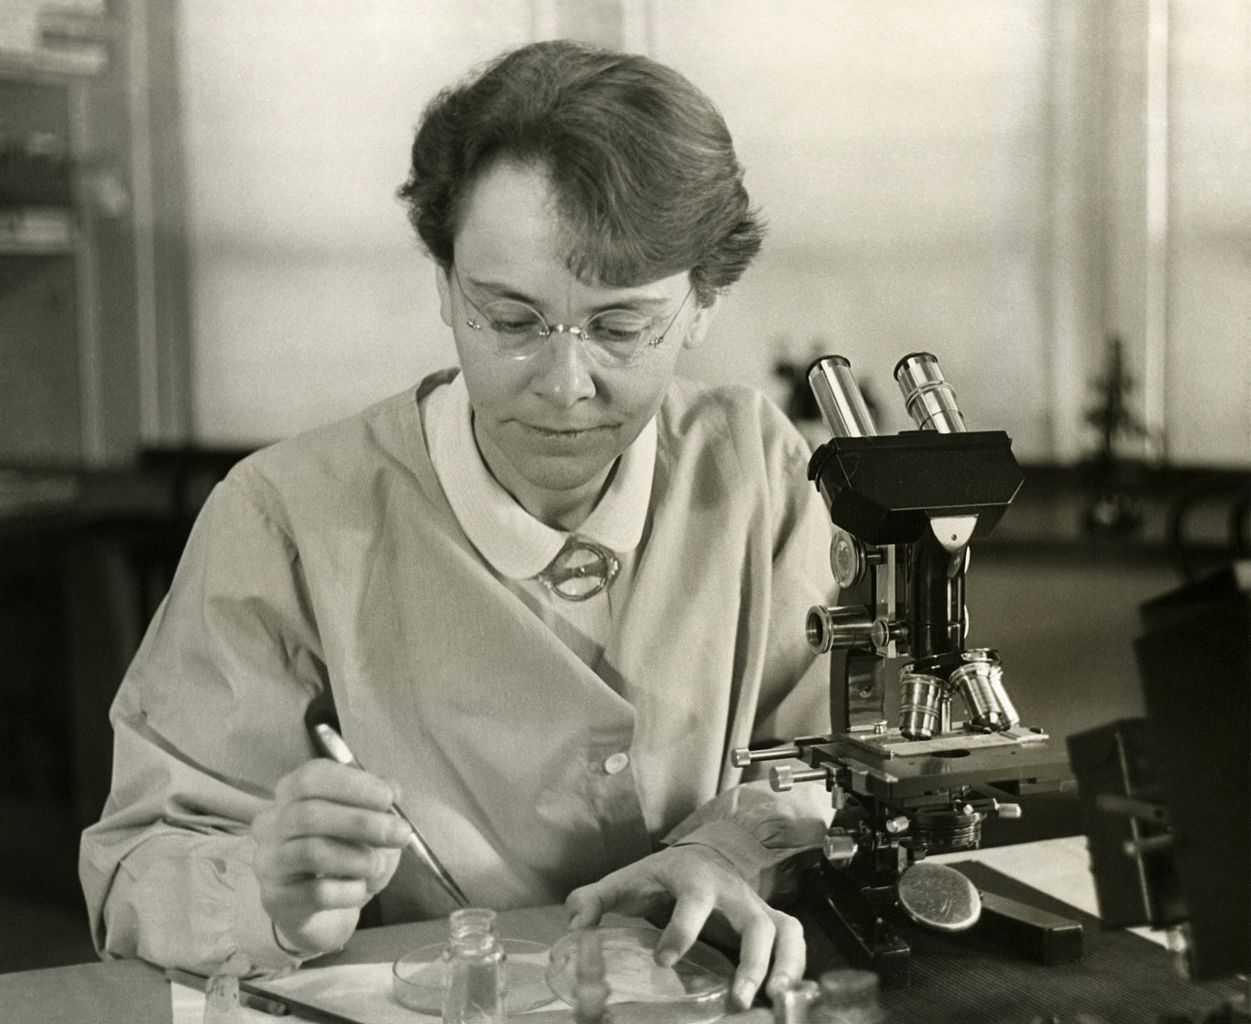 Barbara_McClintock_(1902-1992)_shown_in_her_laboratory_in_1947